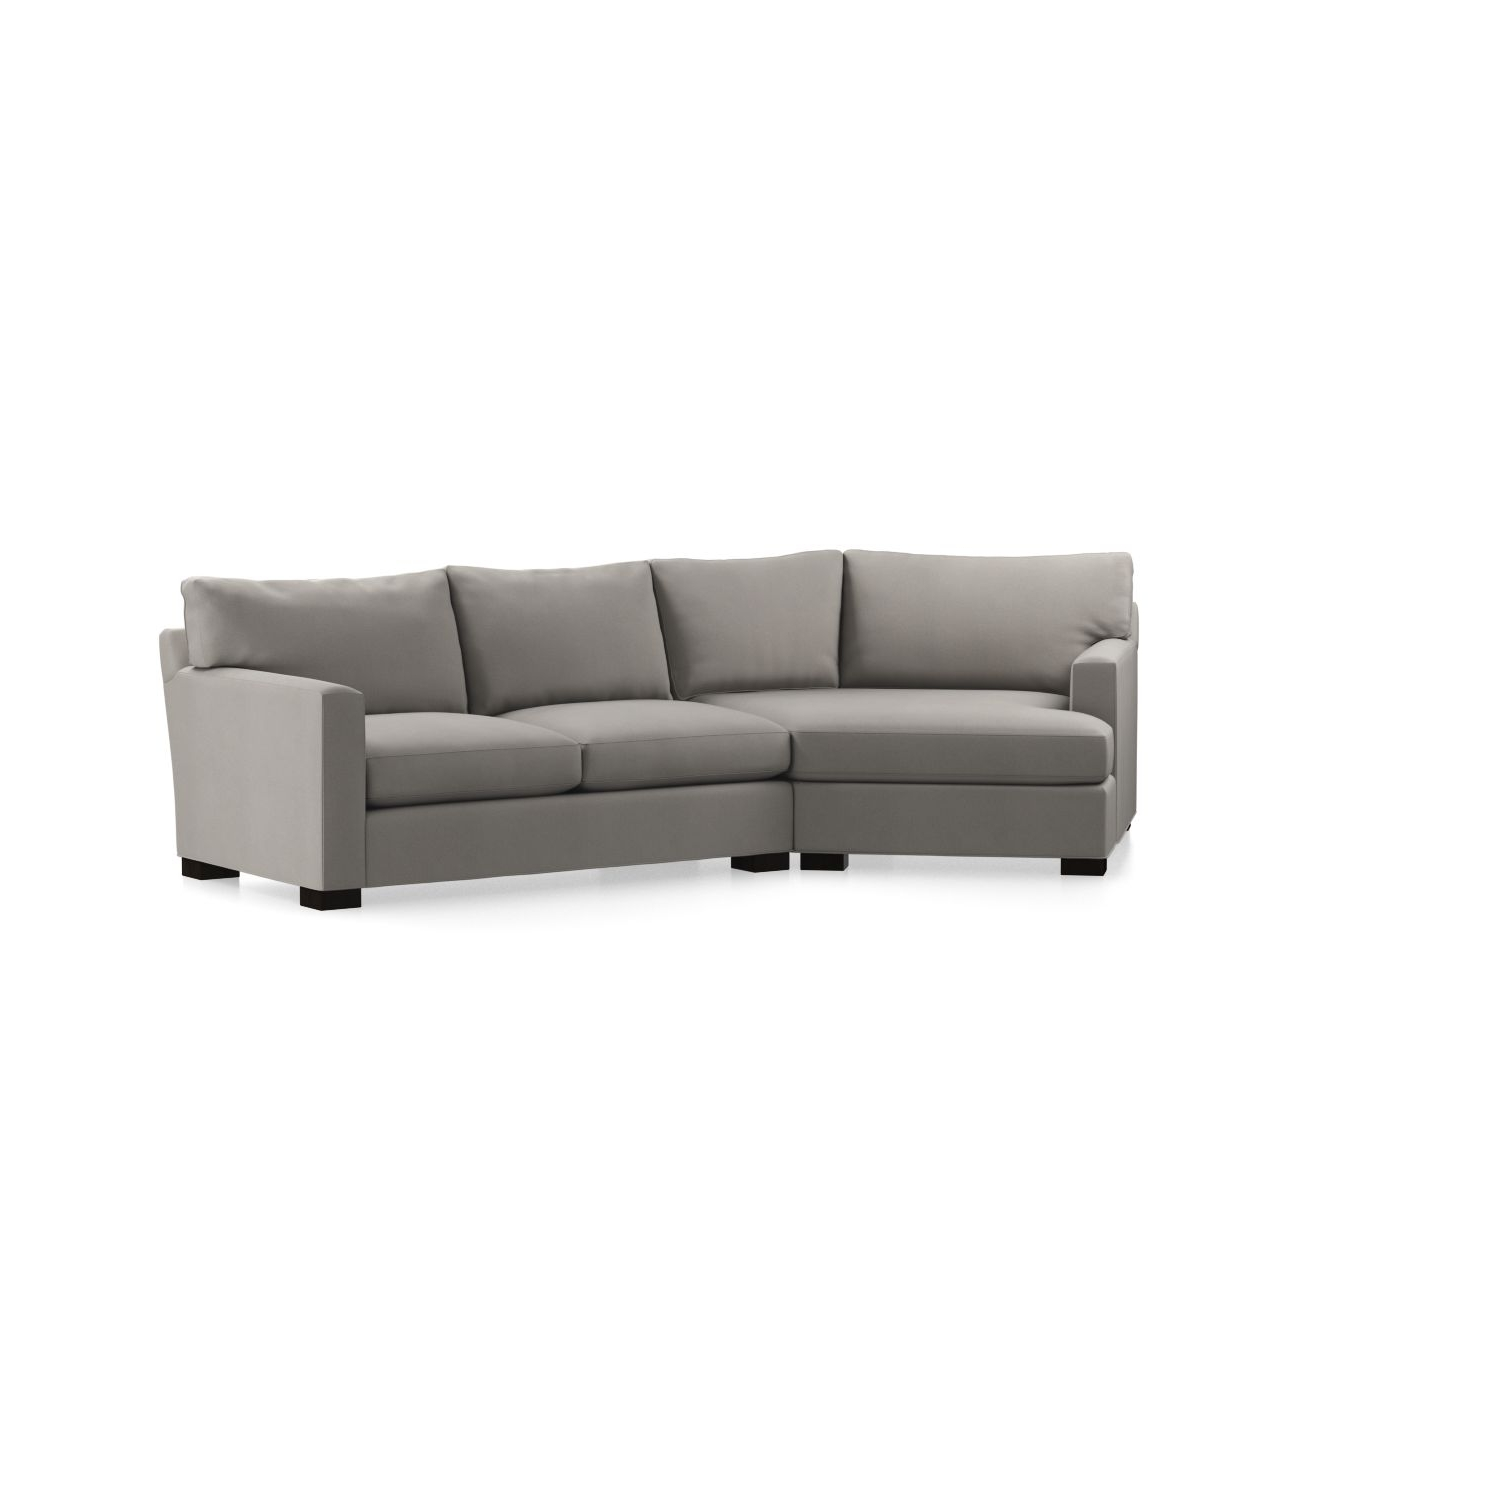 Axis Ii 2 Piece Left Arm Angled Chaise Sectional Sofa In Axis Pertaining To Well Known Angled Chaise Sofas (View 4 of 15)